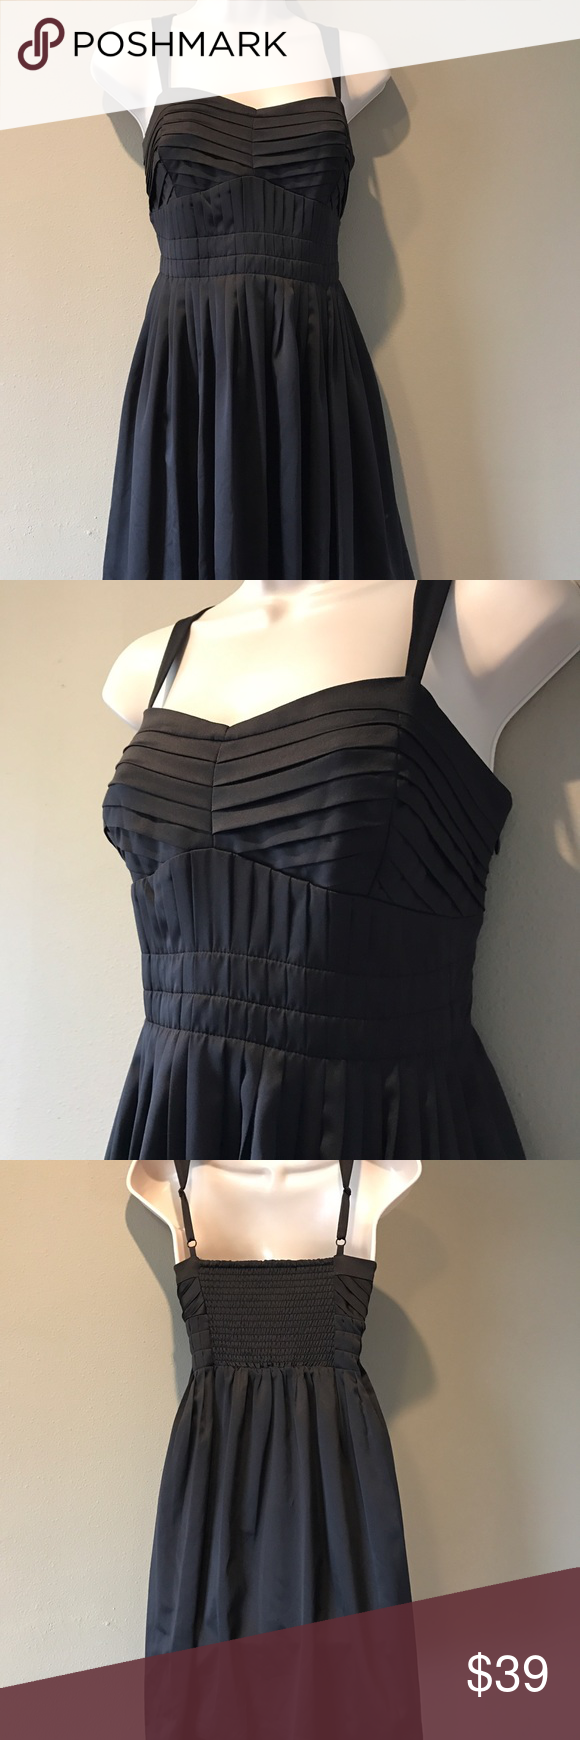 BCBGeneration BLACK dress, size 12 In excellent preowned condition, BCBGeneration, above the knee black dress.   Fully lined, size is 12. BCBGeneration Dresses